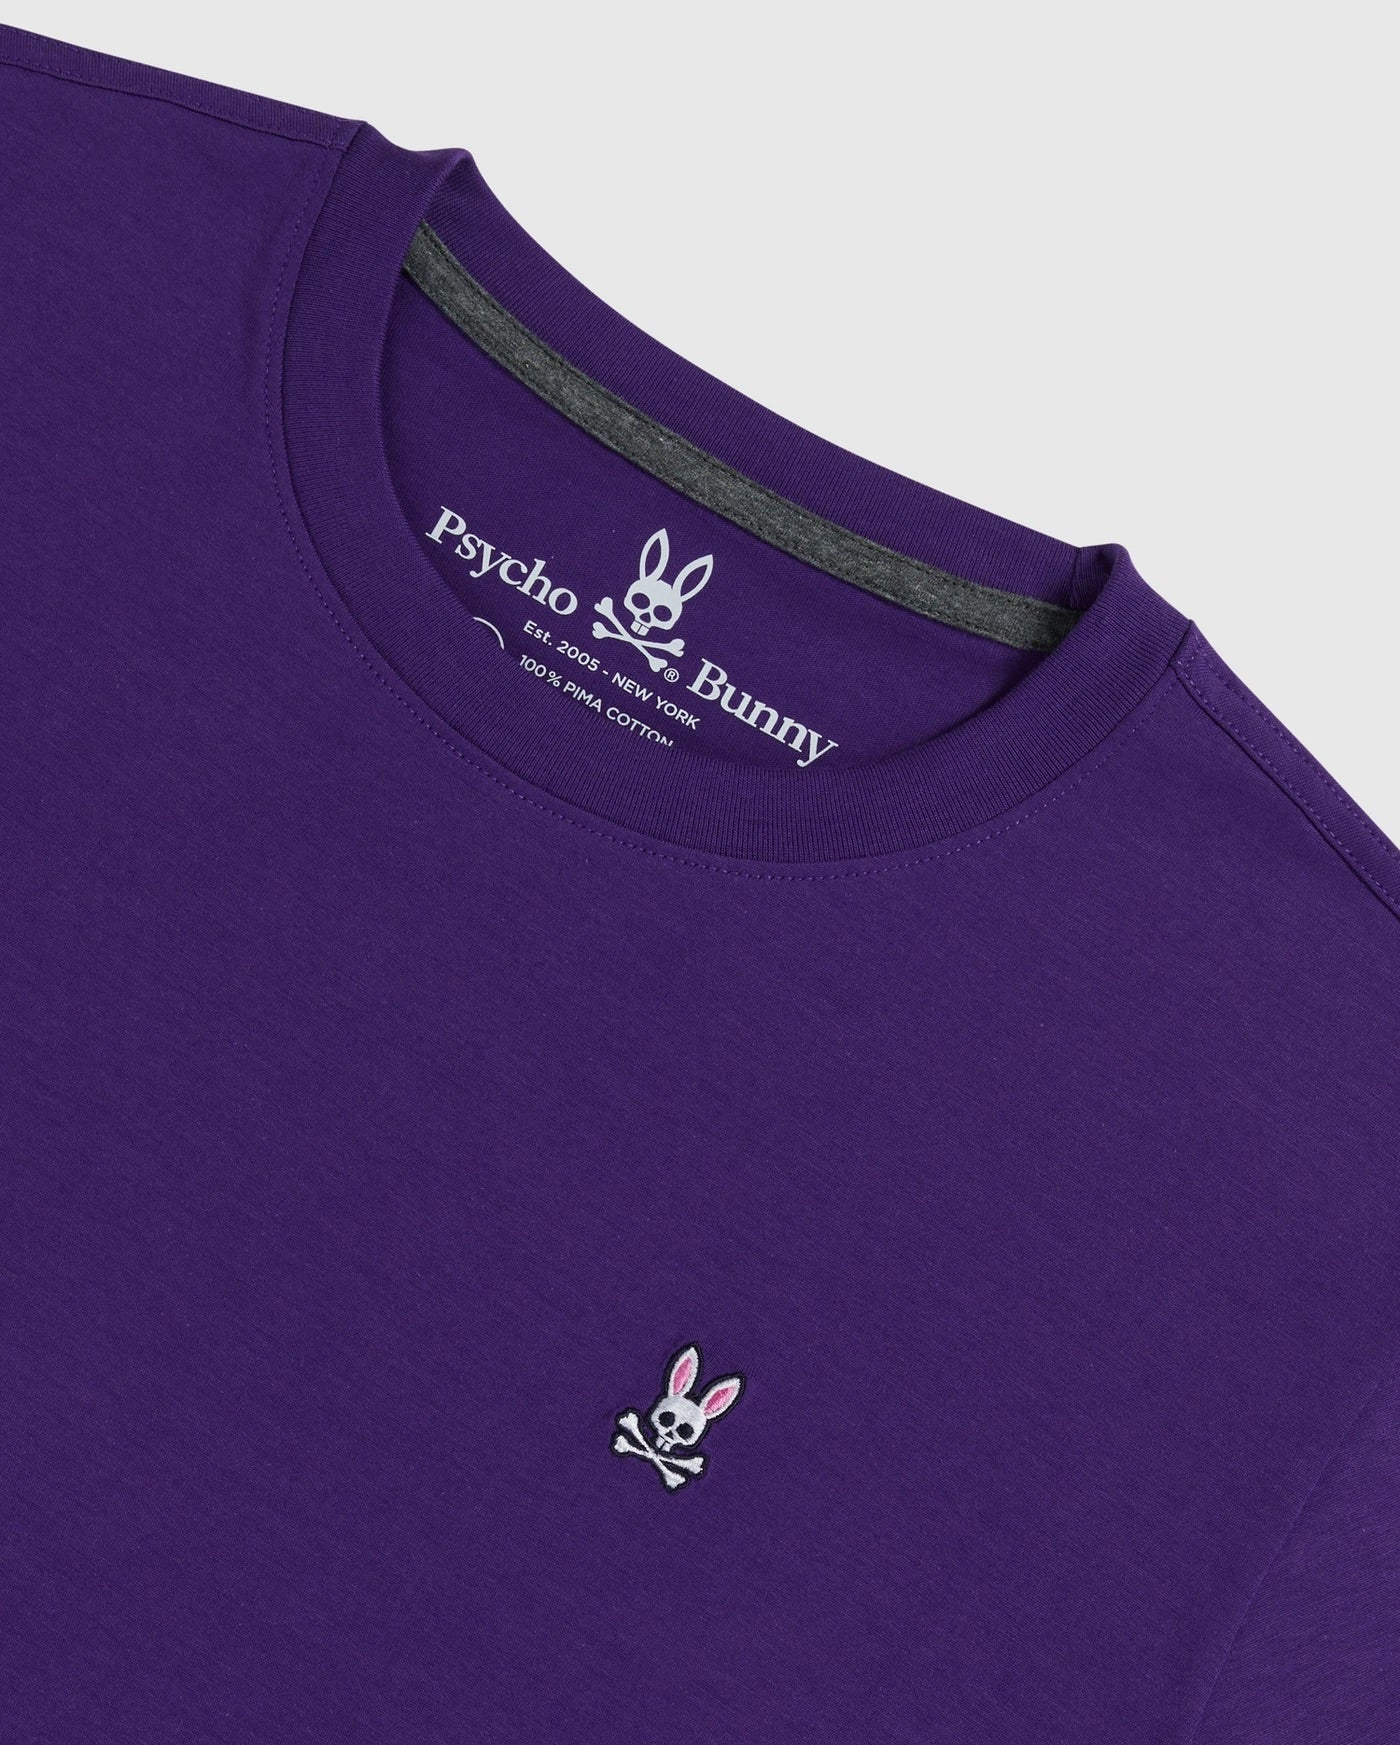 SS CREW NECK TEE - PURPLE